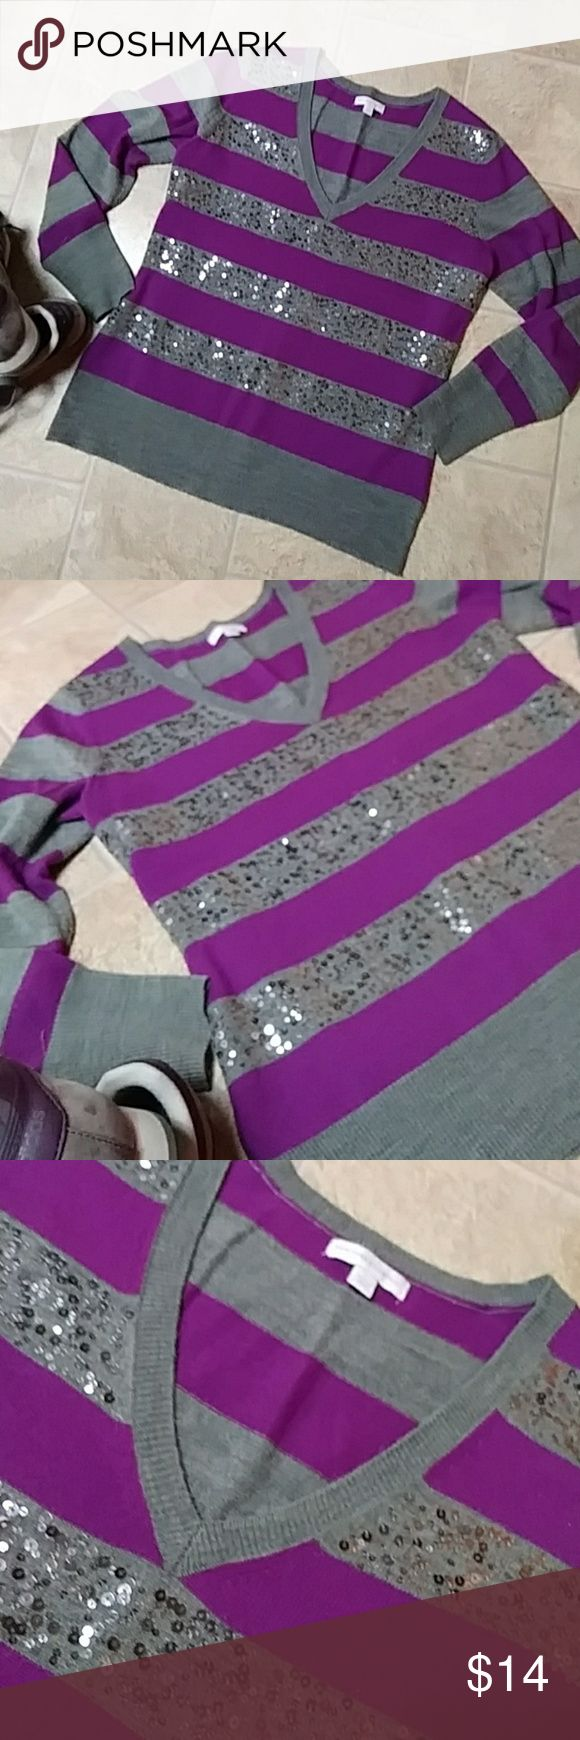 """🆕💜New York & Company v-neck sweater Pre-loved with lots of sparkle left. All sequin still attached. Gray with  nice bright purple stripes and silver sequins throughout front. Long sleeve and v-neck. Size large. Looks great on. I wore it with matching adidas and jeans with purple cami. Dress up or casual with some added bling;))  Flat chest measures approx 21""""  Under armpit to bottom measures approx 18"""" New York & Company Sweaters V-Necks"""